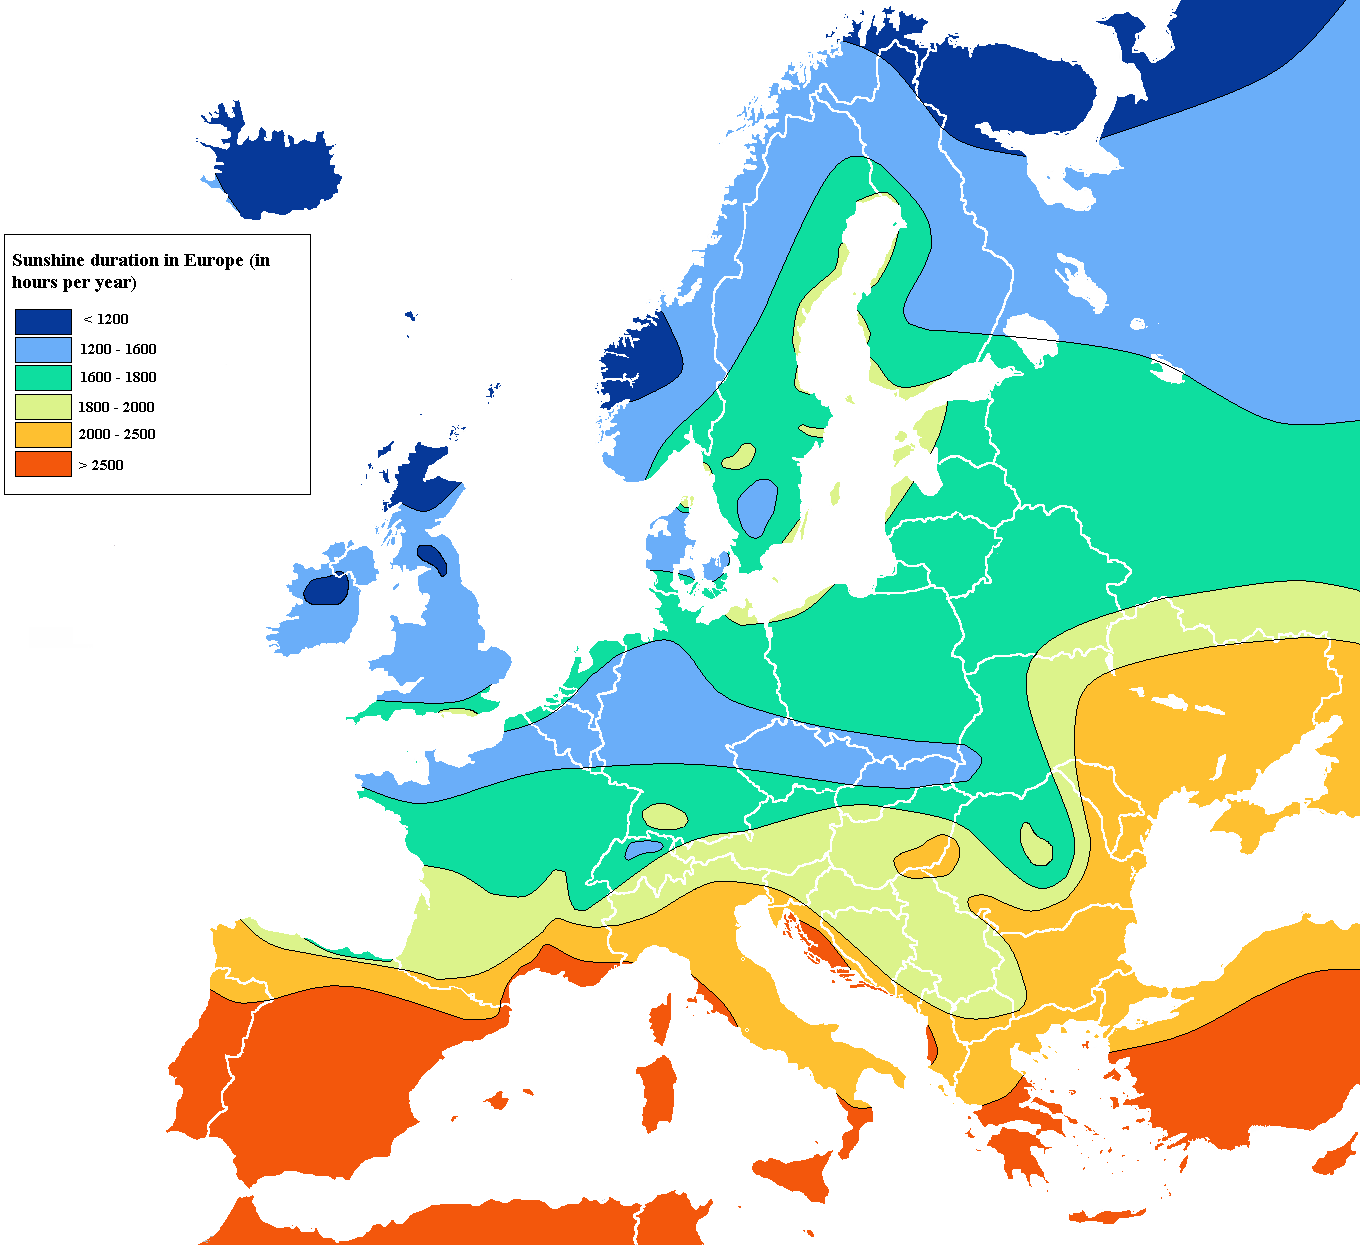 FileEurope sunshine hours mappng Wikimedia Commons